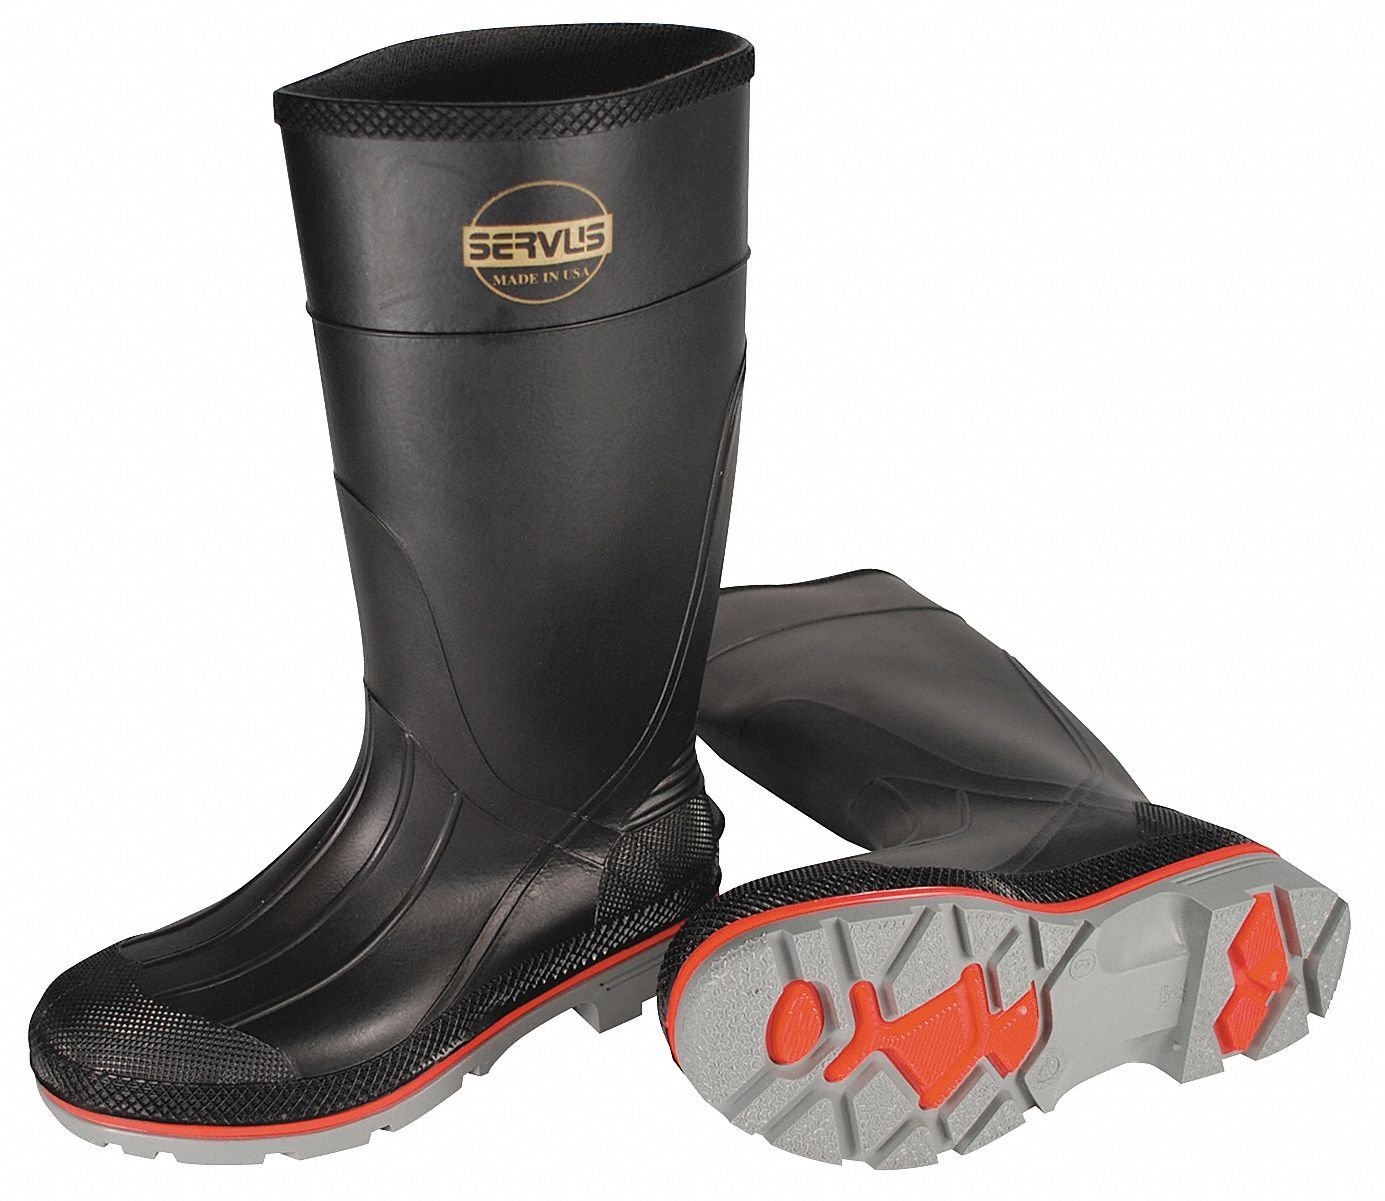 Honeywell Servus 15''H Men's Knee Boots, Plain Toe Type, PVC Upper Material, Black, Size 9 9 75108/9-1 Each